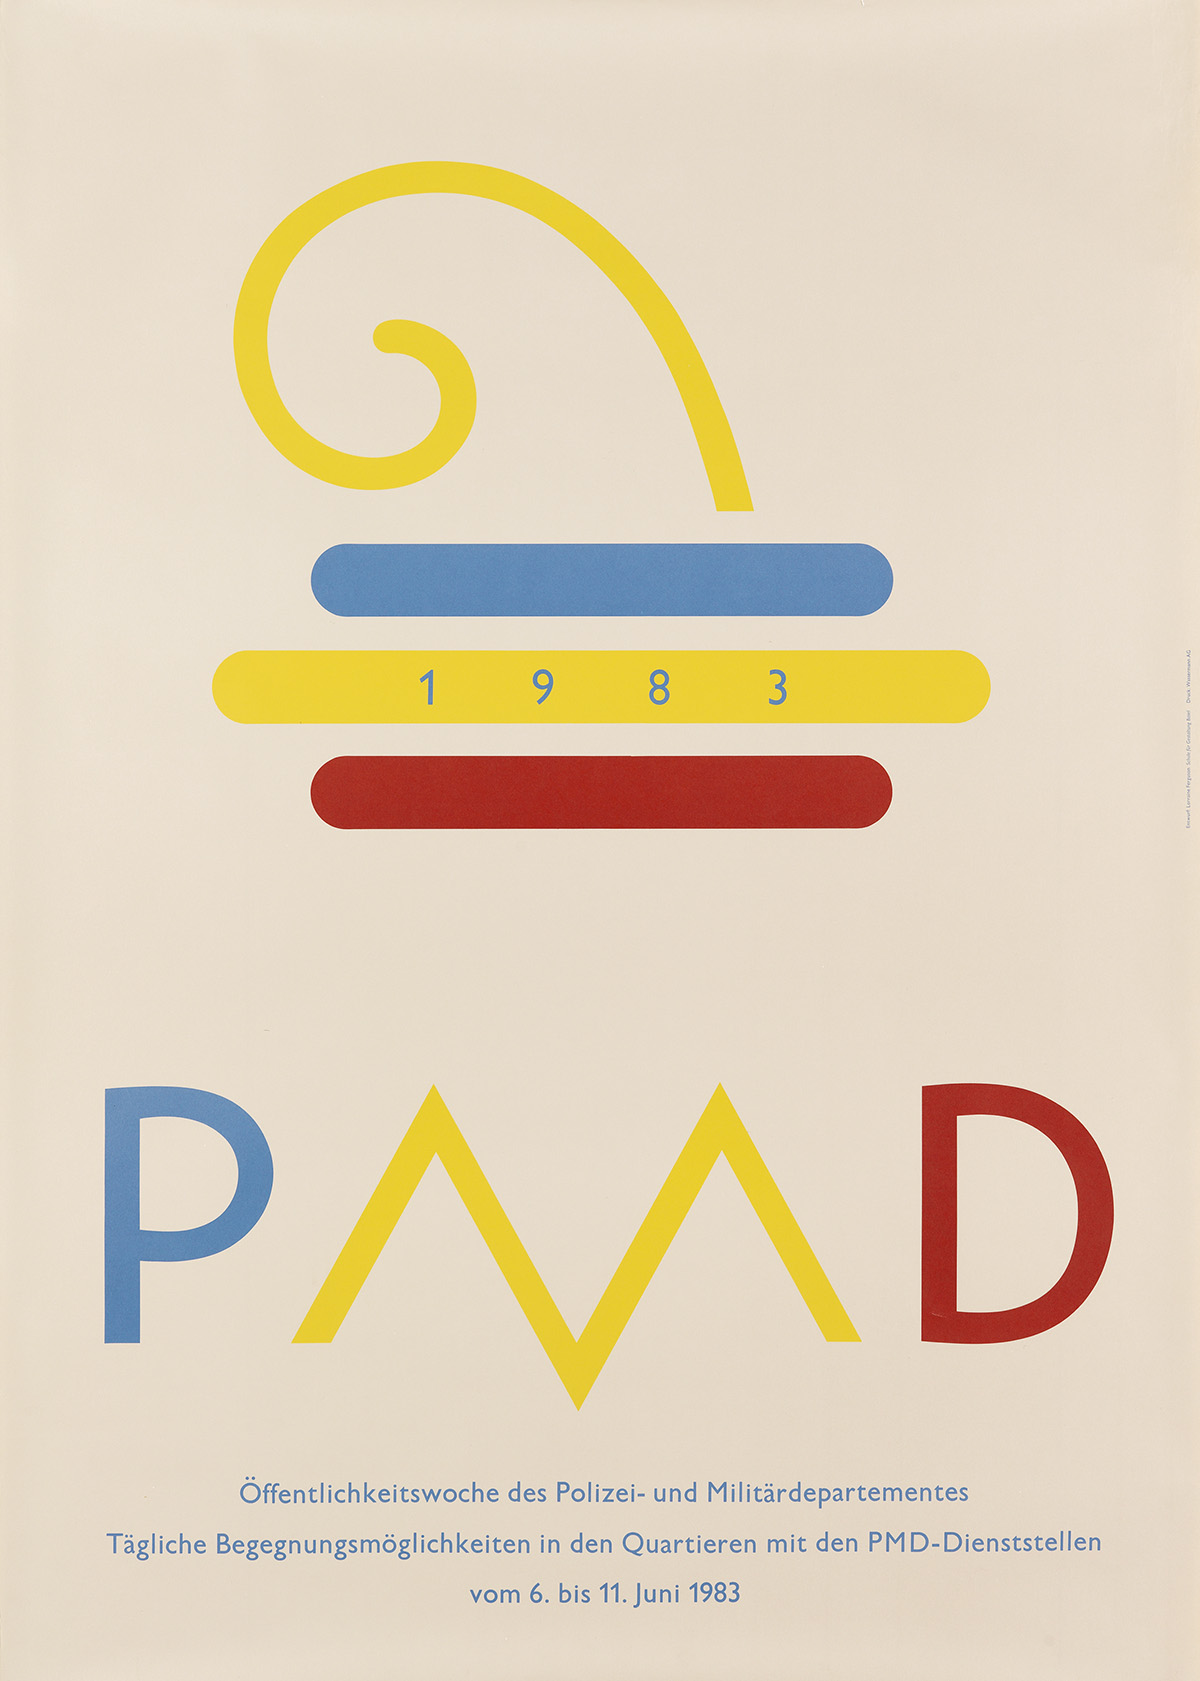 VARIOUS-ARTISTS-[SWISS-GRAPHIC-DESIGN]-Group-of-4-posters-19